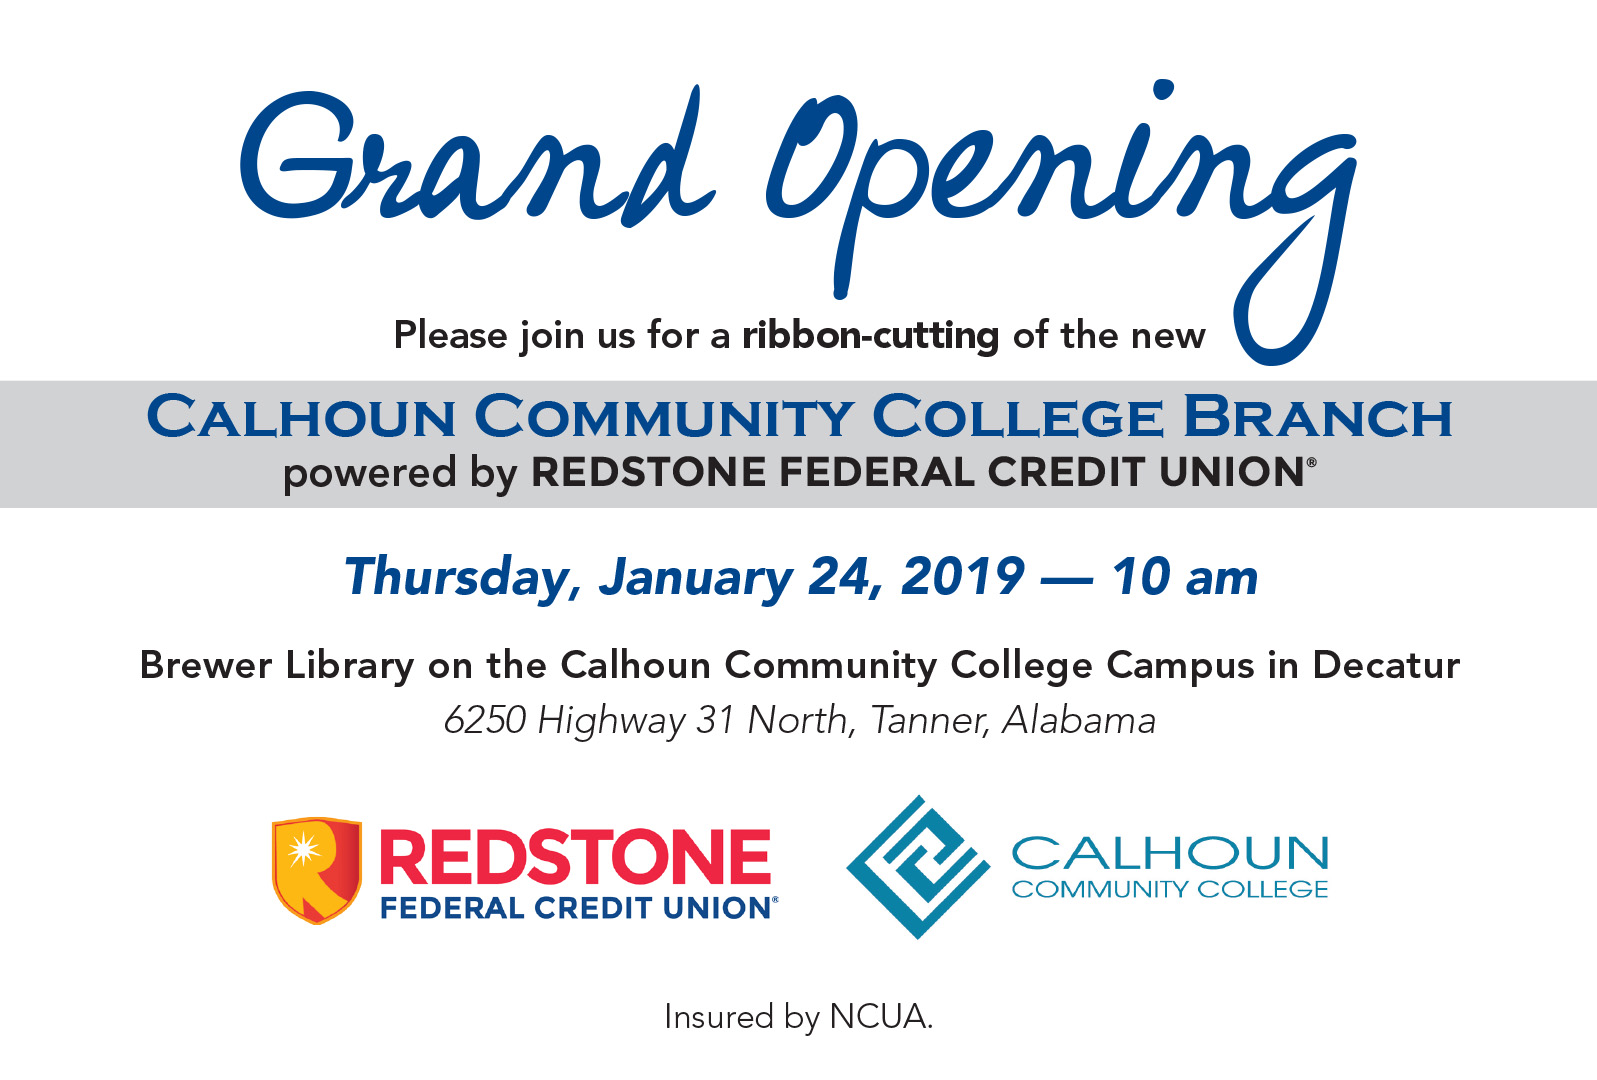 Grand Opening - please join us for a ribbon-cutting of the new calhoun Community college Branch powererd by Redstone federal Credit Union. Thursday, January 24 at 10 AM. Brewer Library on the Calhoun community college Campus in Decatur. 6250 Hwy. 31 North, Tanner, AL